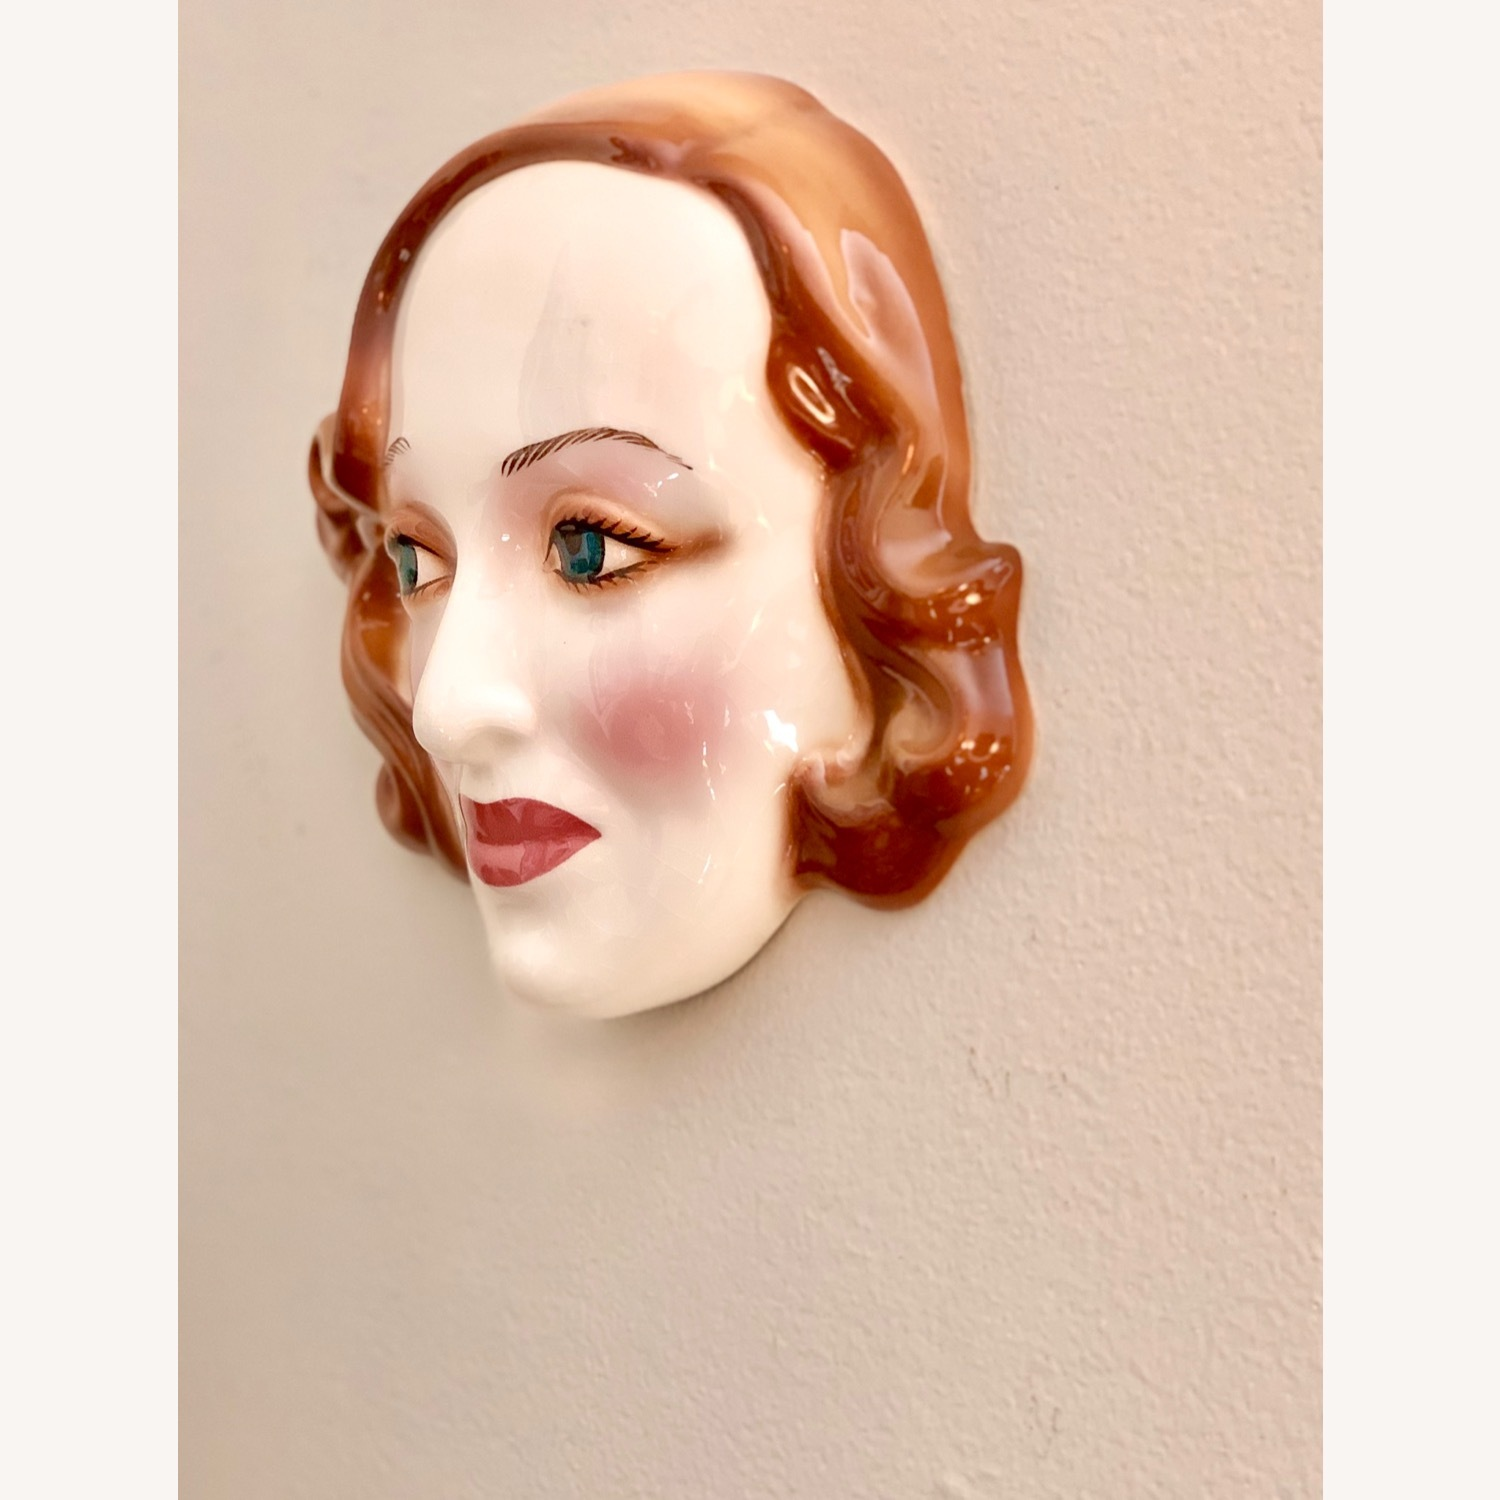 Vintage Porcelain Bette Davis Wall art - image-2